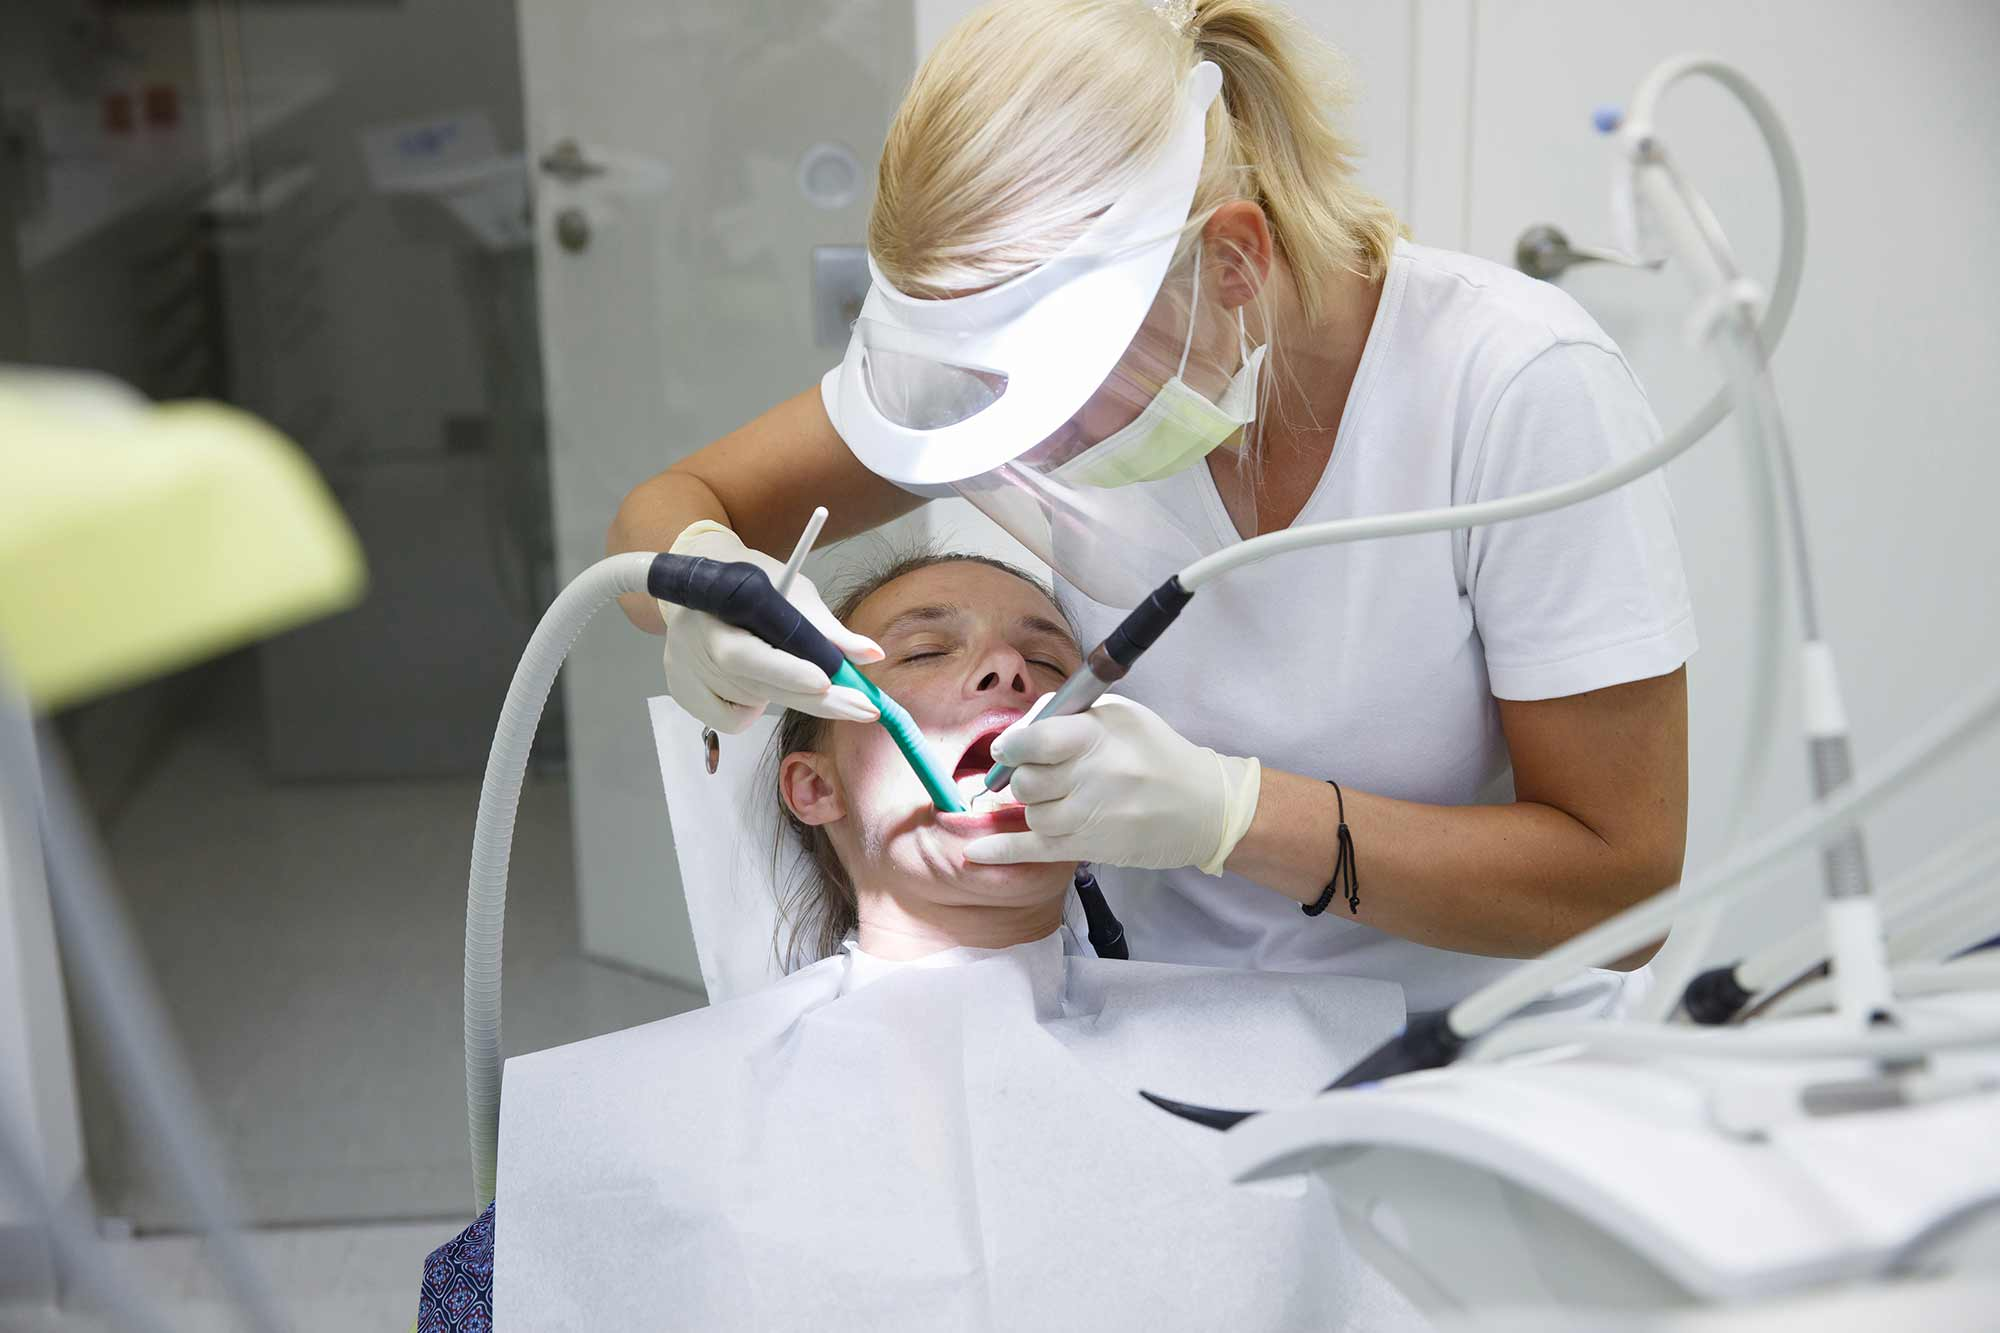 Dental professionals are among the most at risk jobs when it comes to health, according to a study